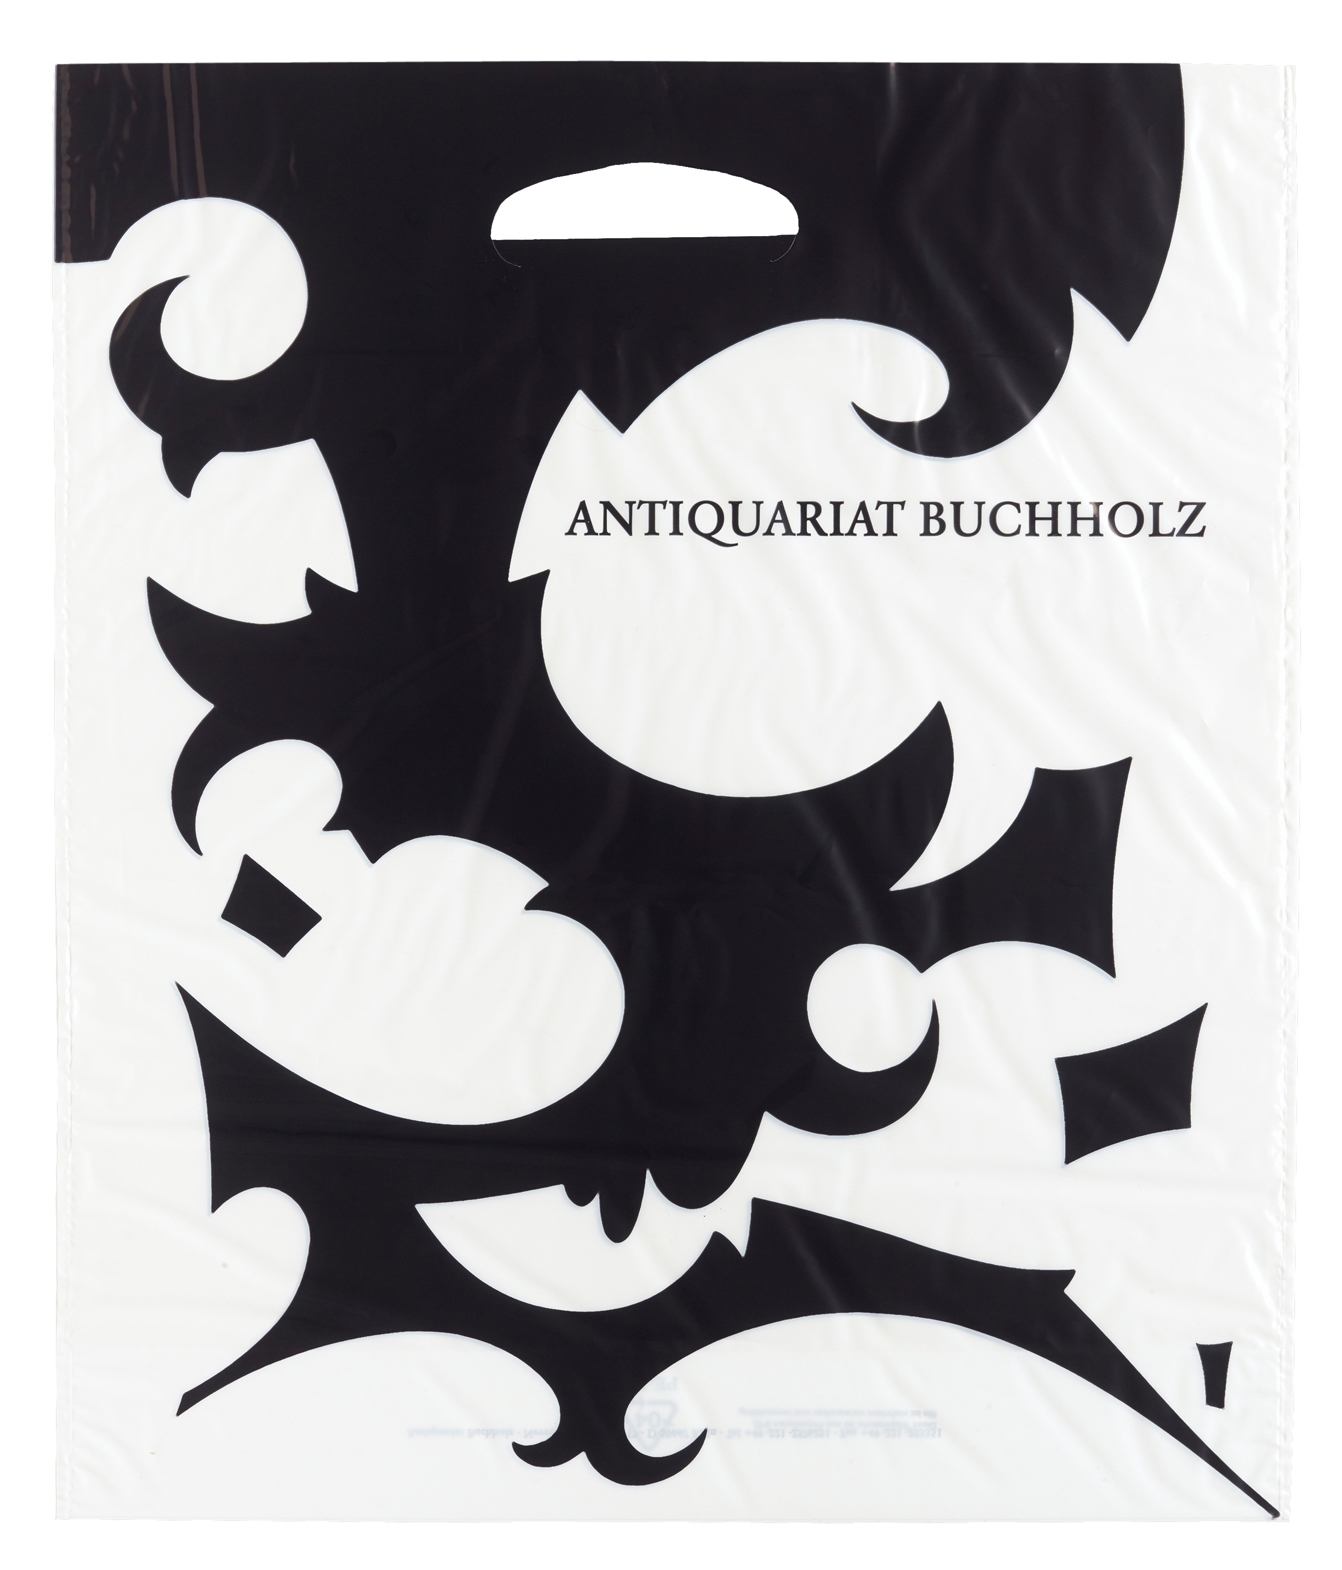 Julian Göthe – 2005, design for plastic shopping bag for Antiquariat Buchholz